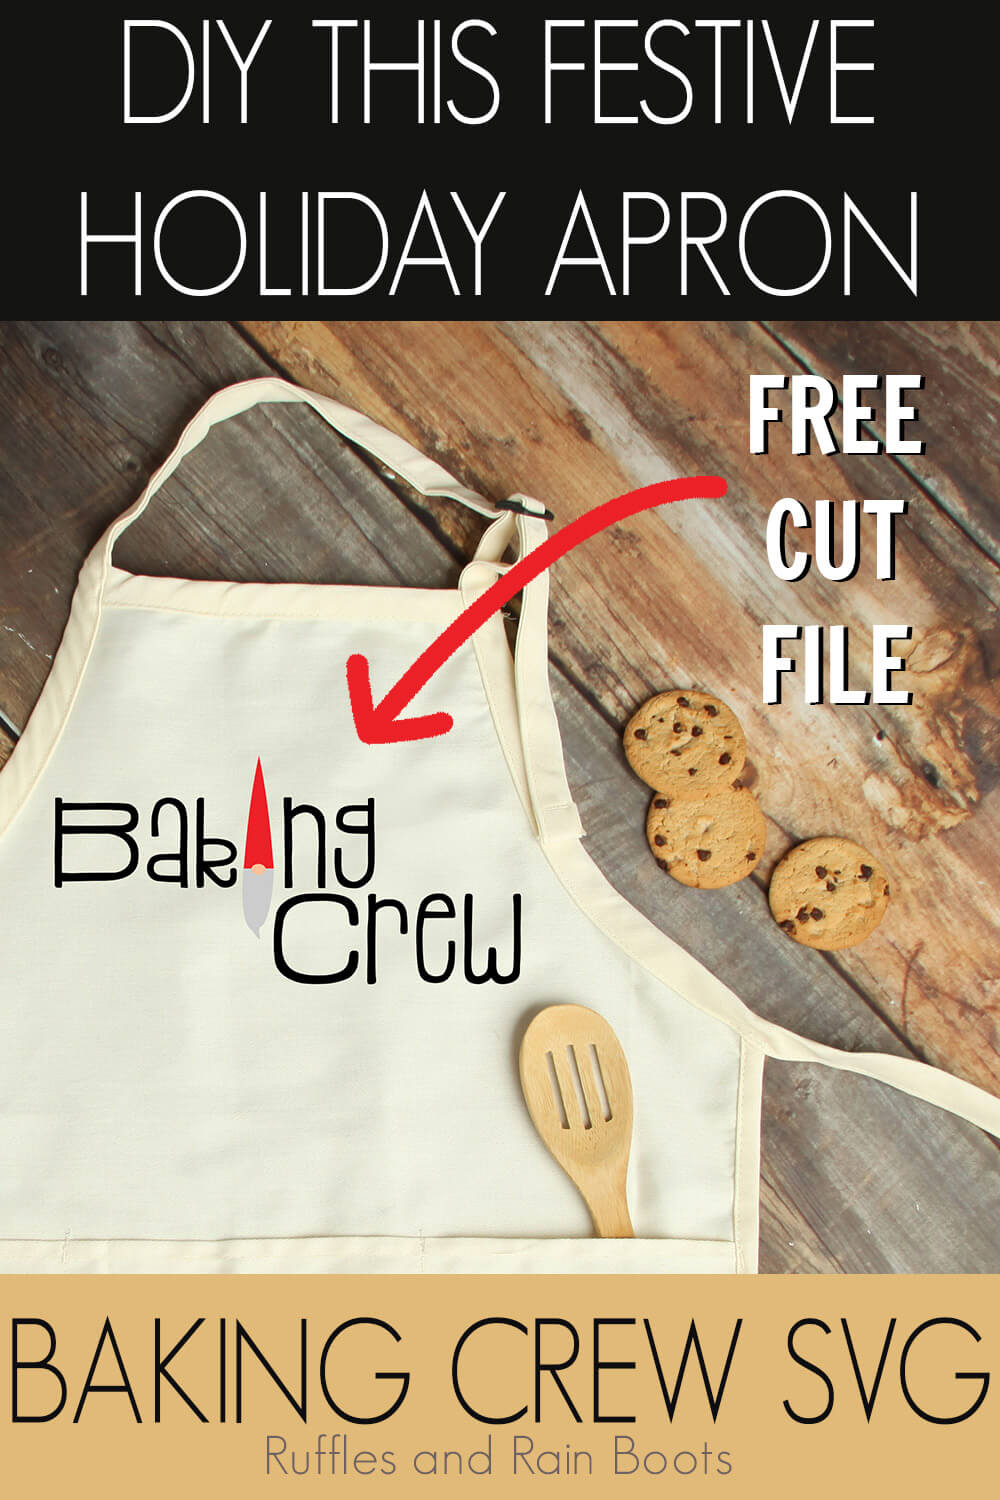 baking crew free christmas svg placed onto an apron on a wooden background with text which reads DIY this festive holiday apron with free baking crew cut file